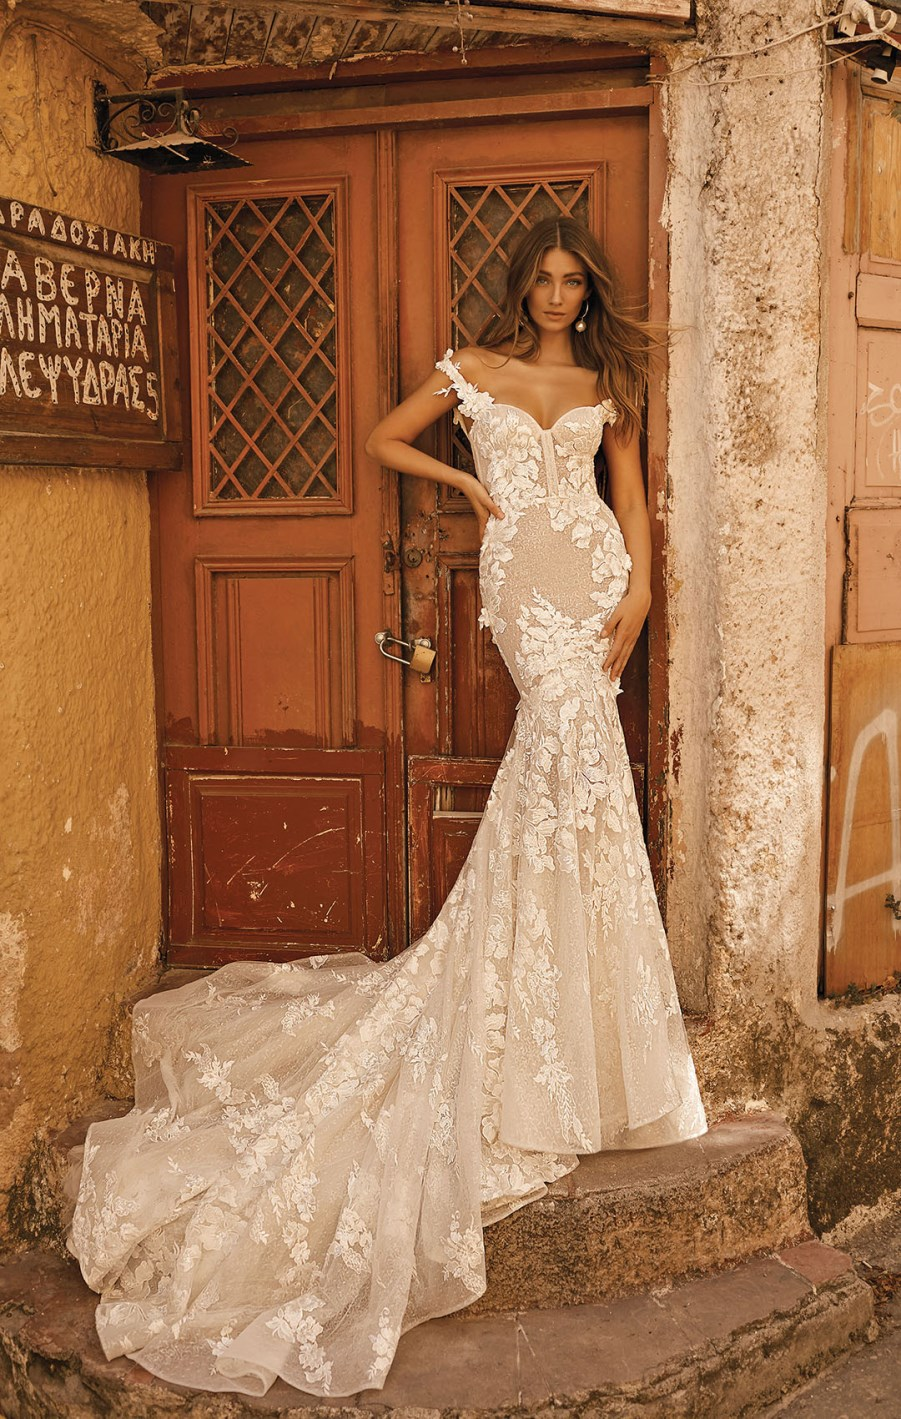 berta-wedding-dress-2019-1 (2)_2